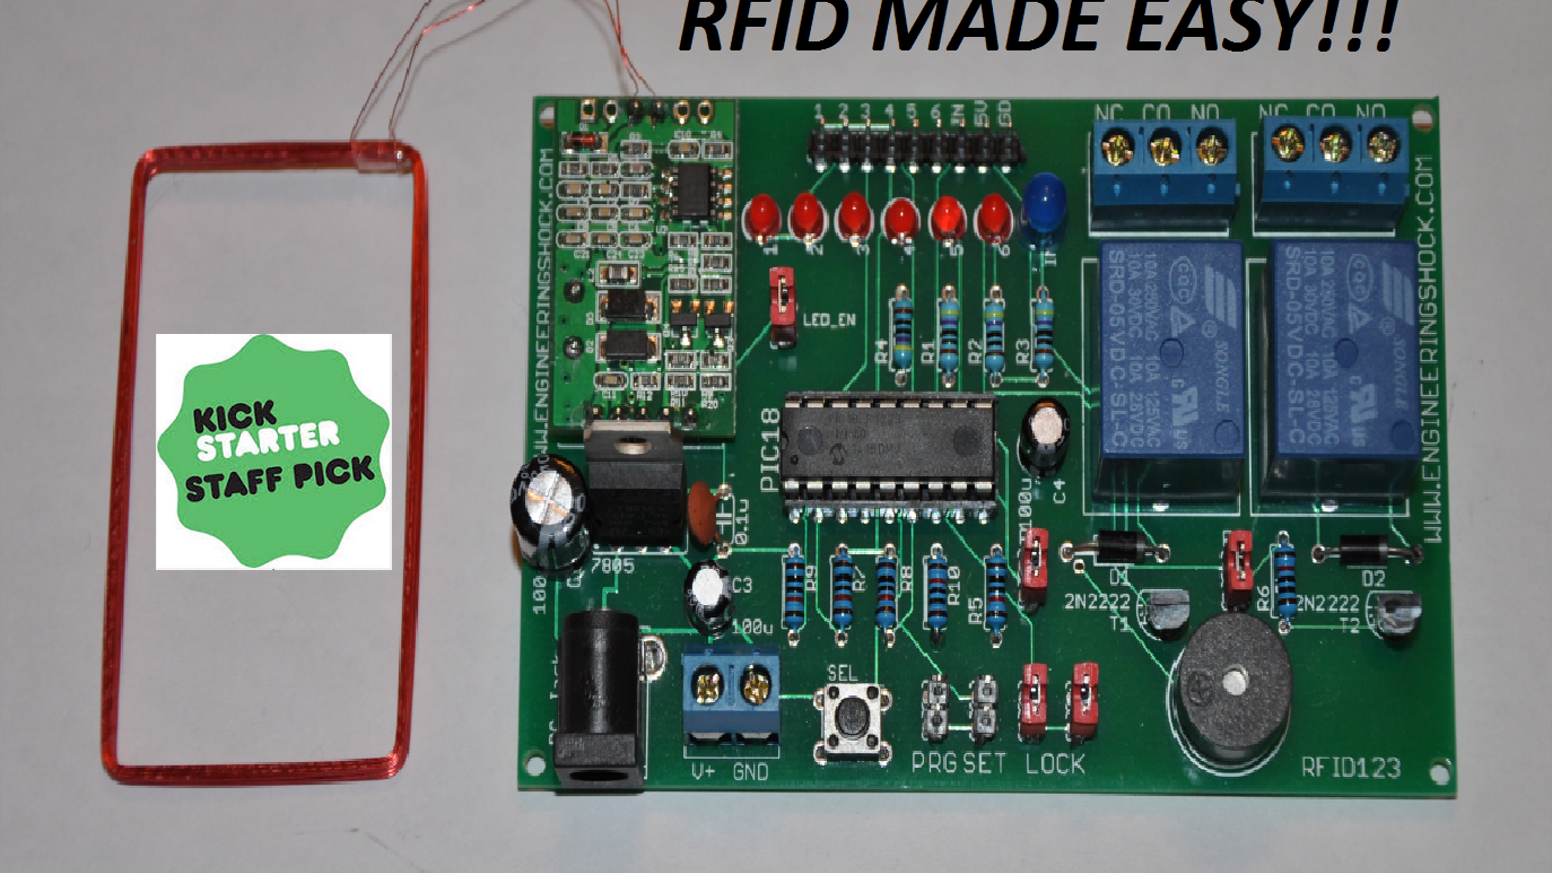 The RFID123 Arduino Compatible RFID Reader - Decoder Set by